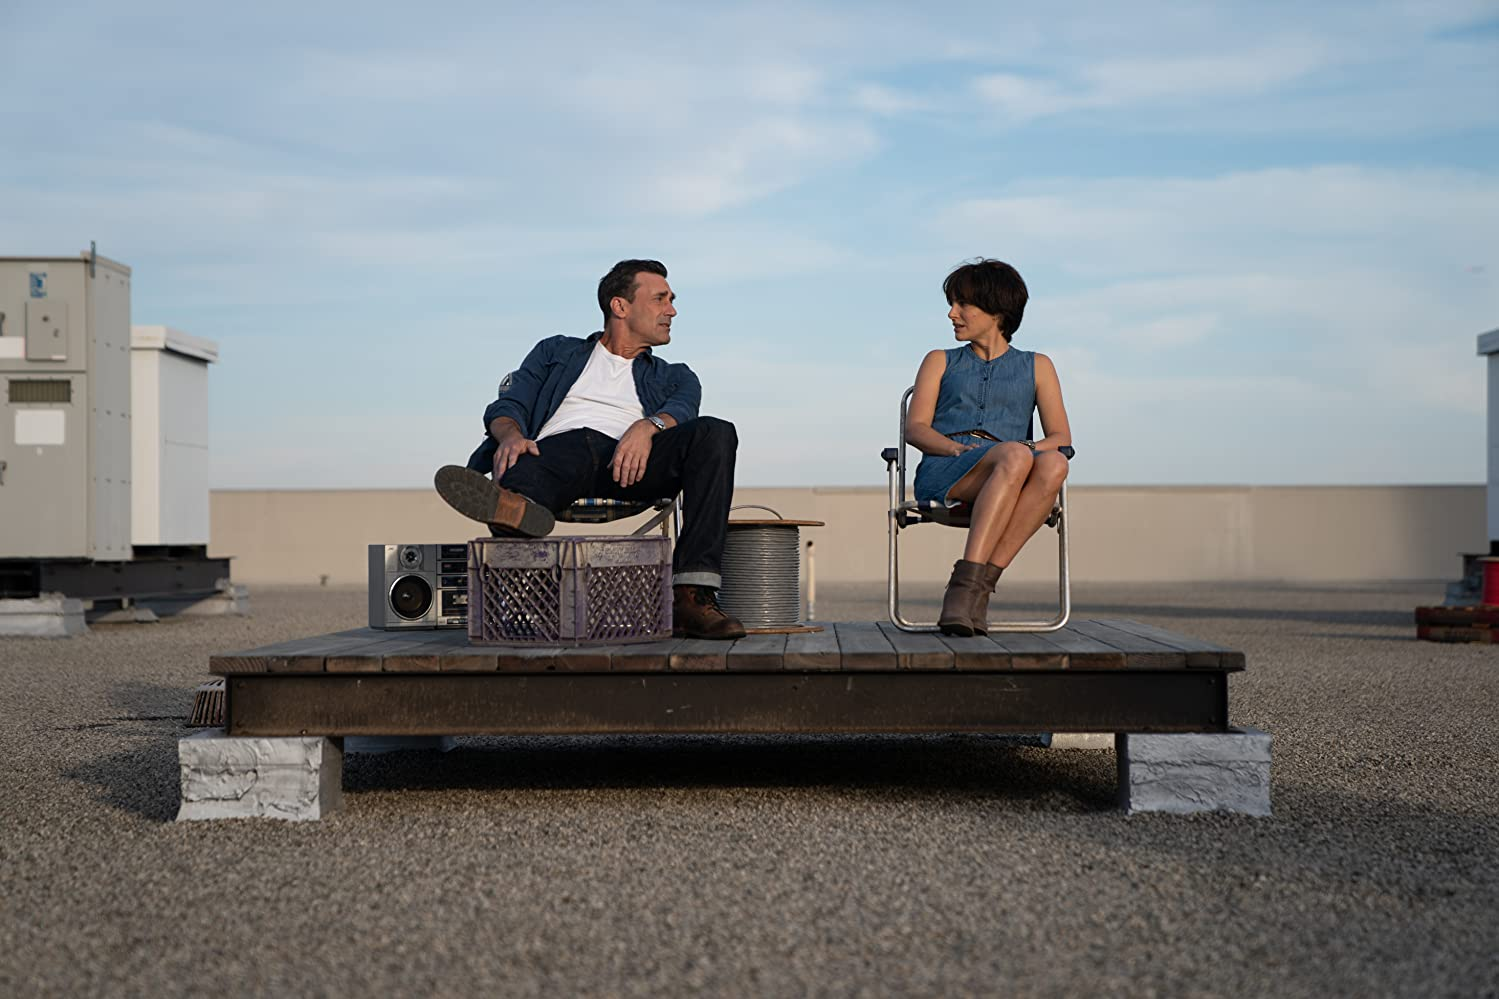 Natalie Portman and Jon Hamm in Lucy in the Sky (2019)